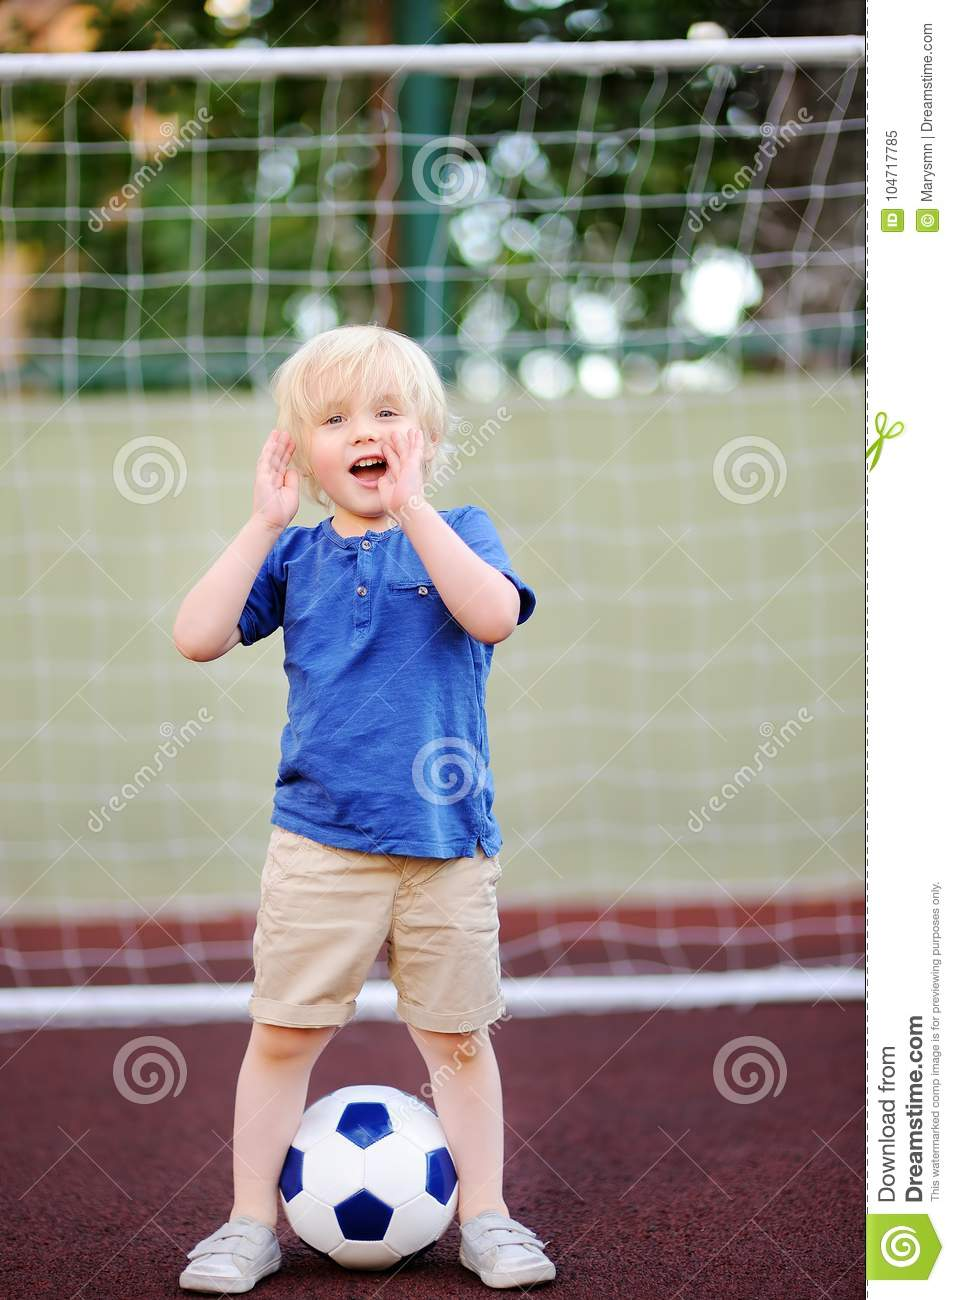 Little boy having fun playing a soccer/football game on summer day